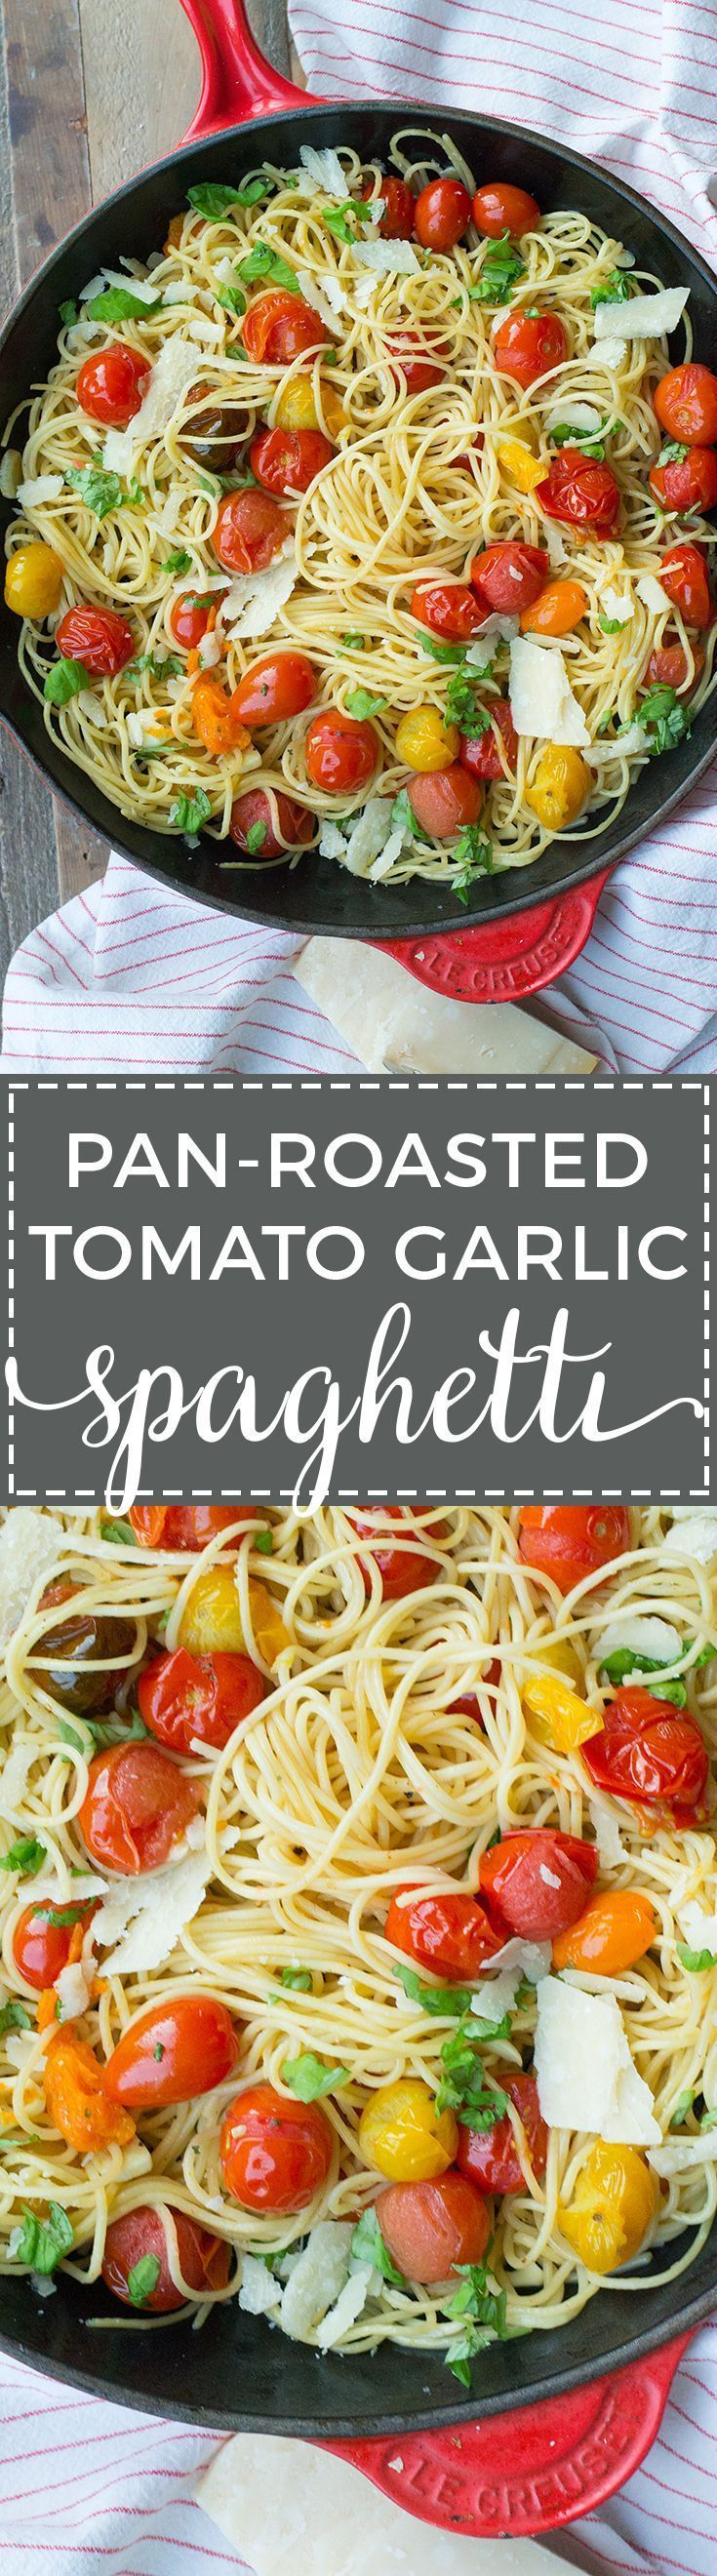 This lightning fast weeknight meal relies on an emulsified sauce to deliver luscious flavor with simple, fresh ingredients - spaghetti, cherry tomatoes, and garlic. Quick and easy pasta for dinner tonight! via @nourishandfete